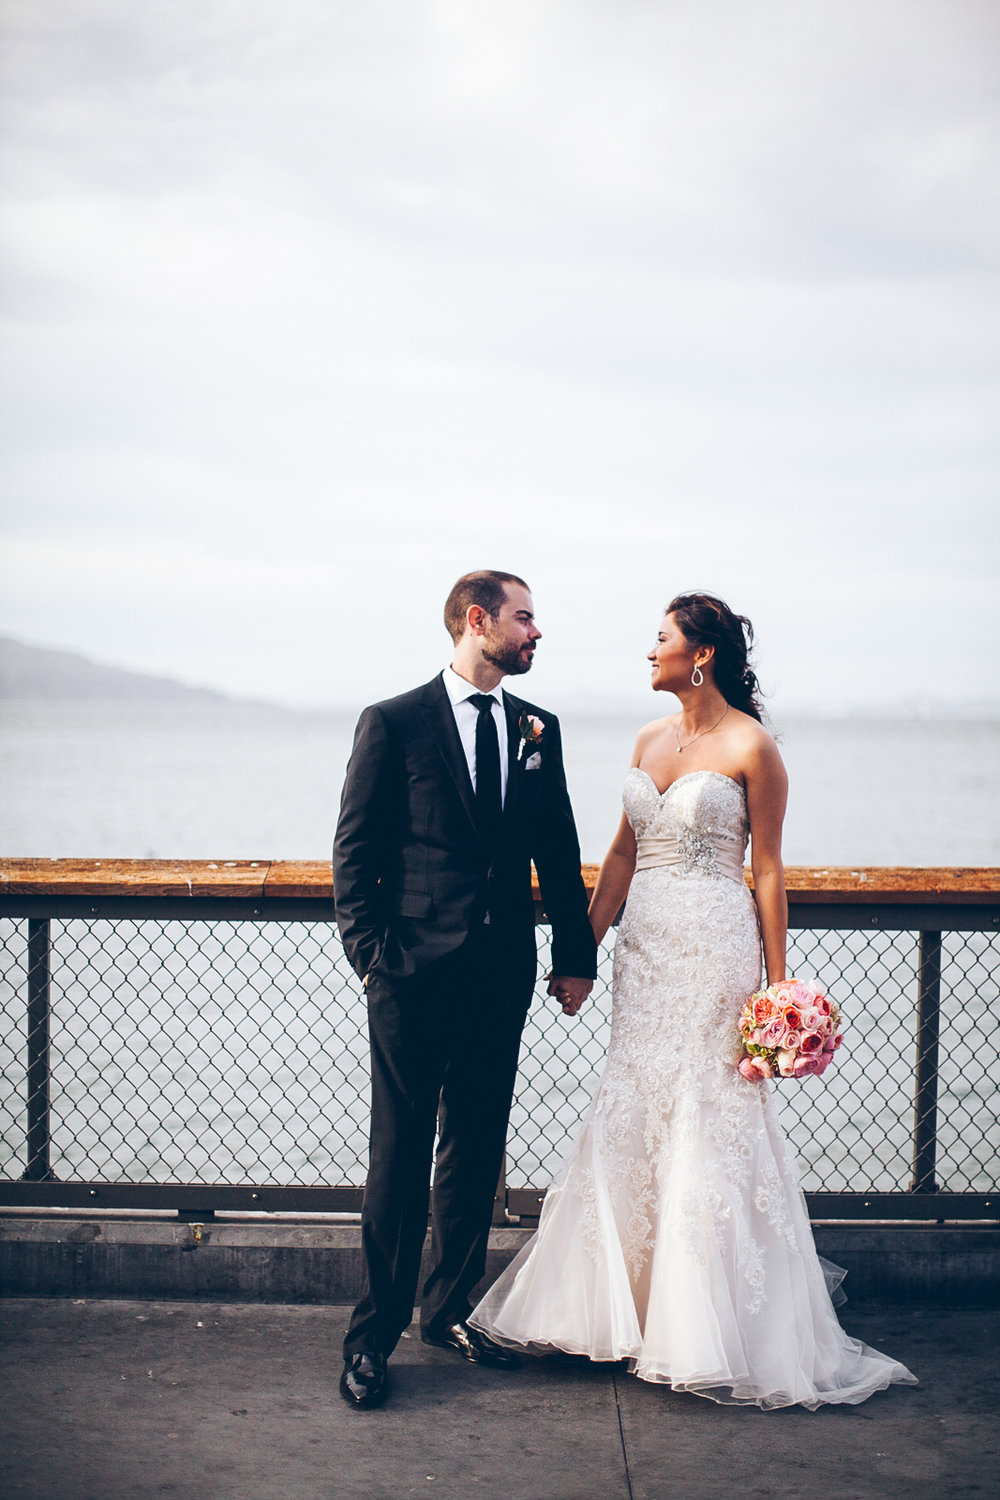 San_francisco_city_hall_wedding_photography_meegan_travis_ebony_siovhan_bokeh_photography_86.jpg